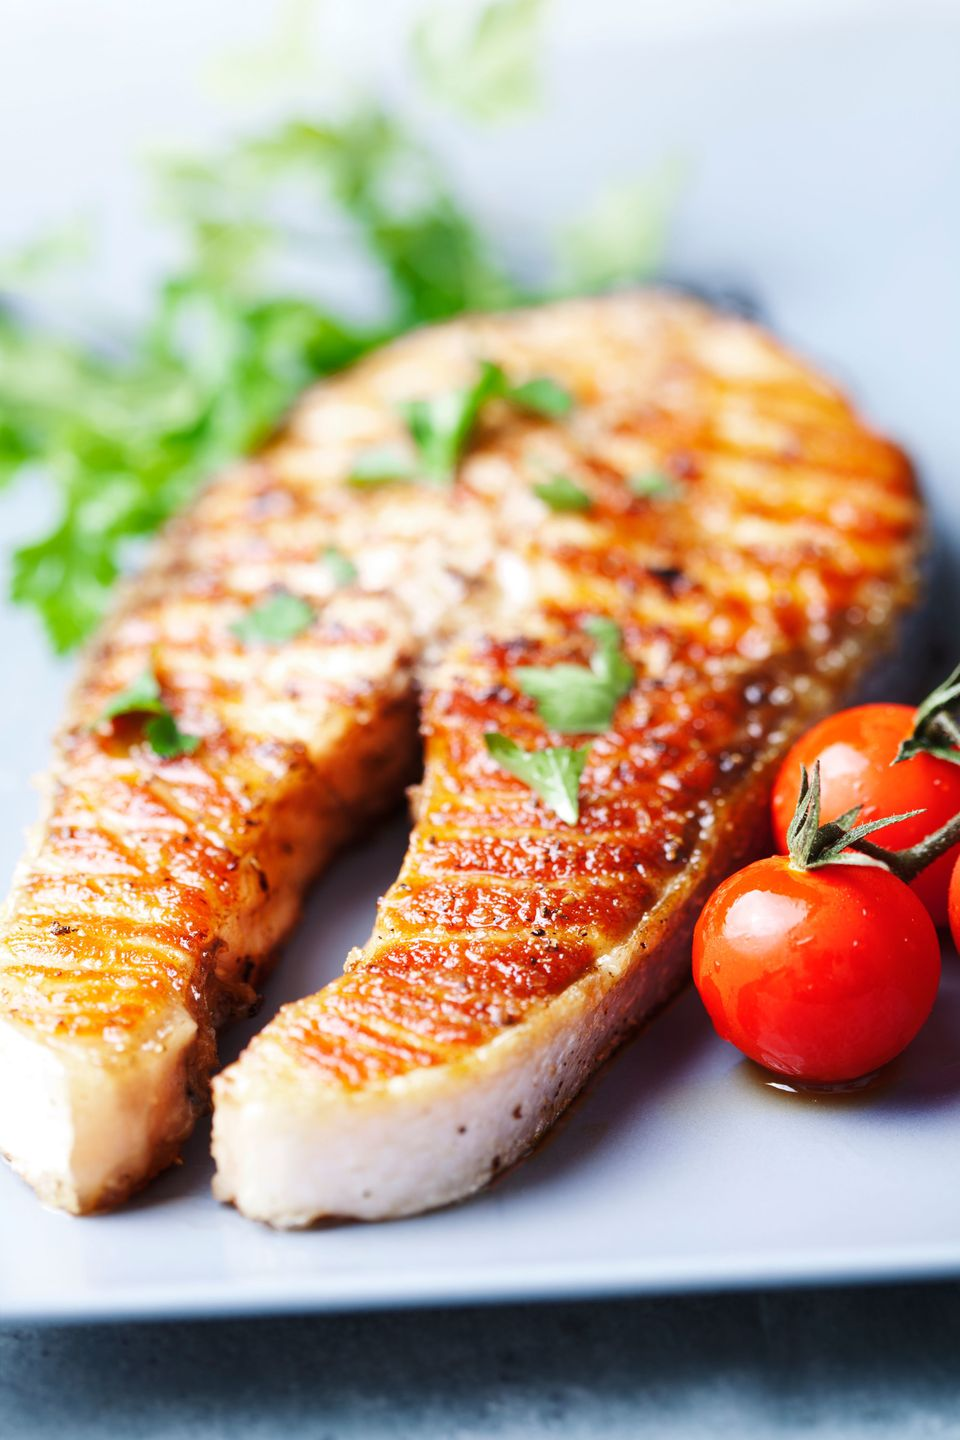 Fatty fish such as salmon, sardines, herring and mackerel boast the omega-3 fatty acids that are key for maintaining healthy